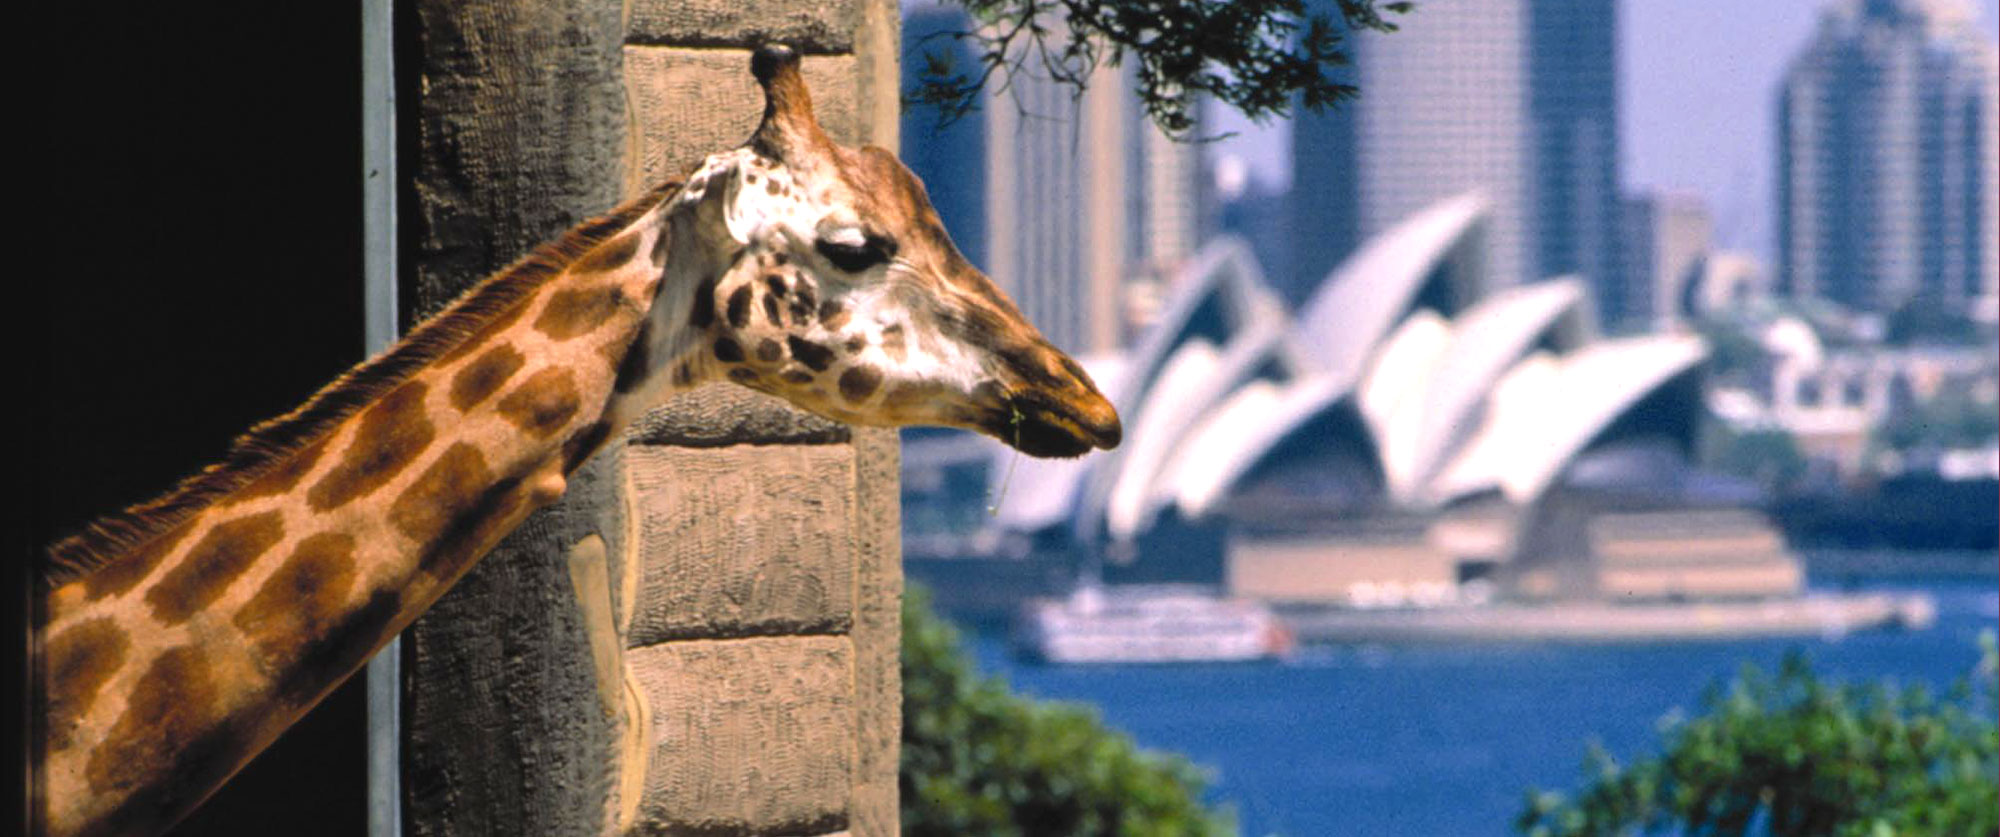 Australian Outback Family Adventure - Sydney Taronga Zoo